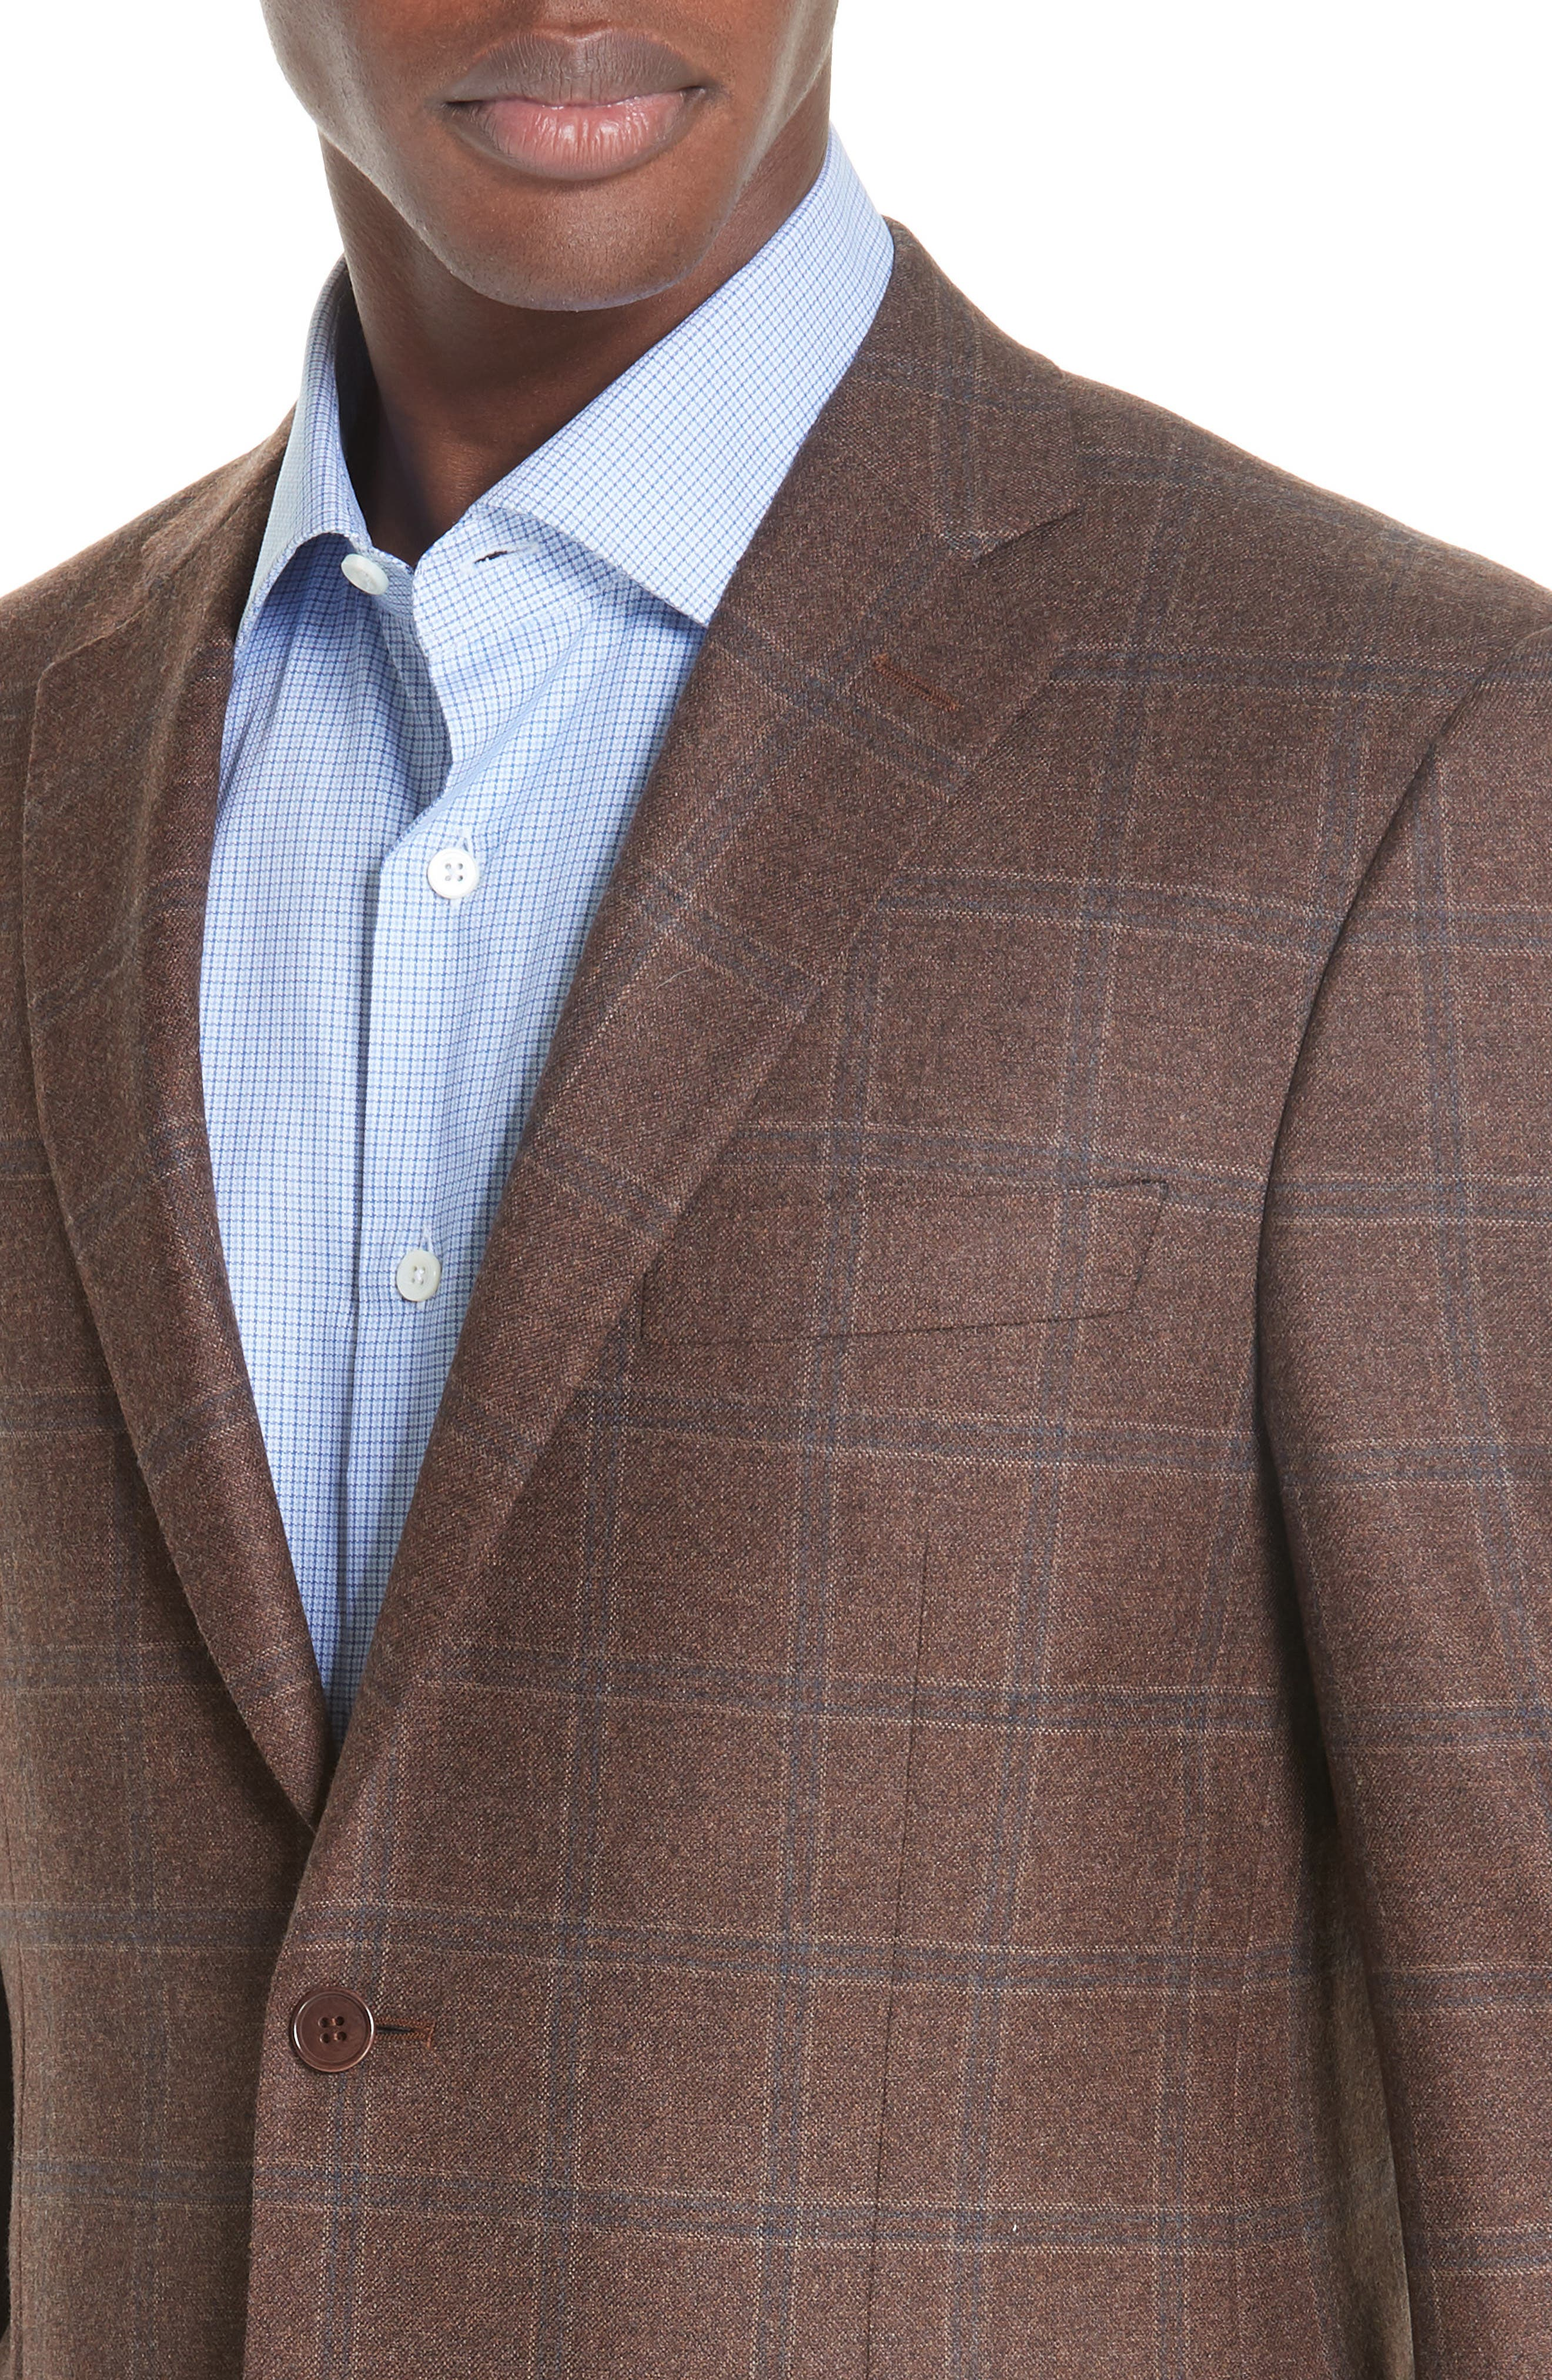 Classic Fit Windowpane Wool Sport Coat,                             Alternate thumbnail 4, color,                             MED BROWN